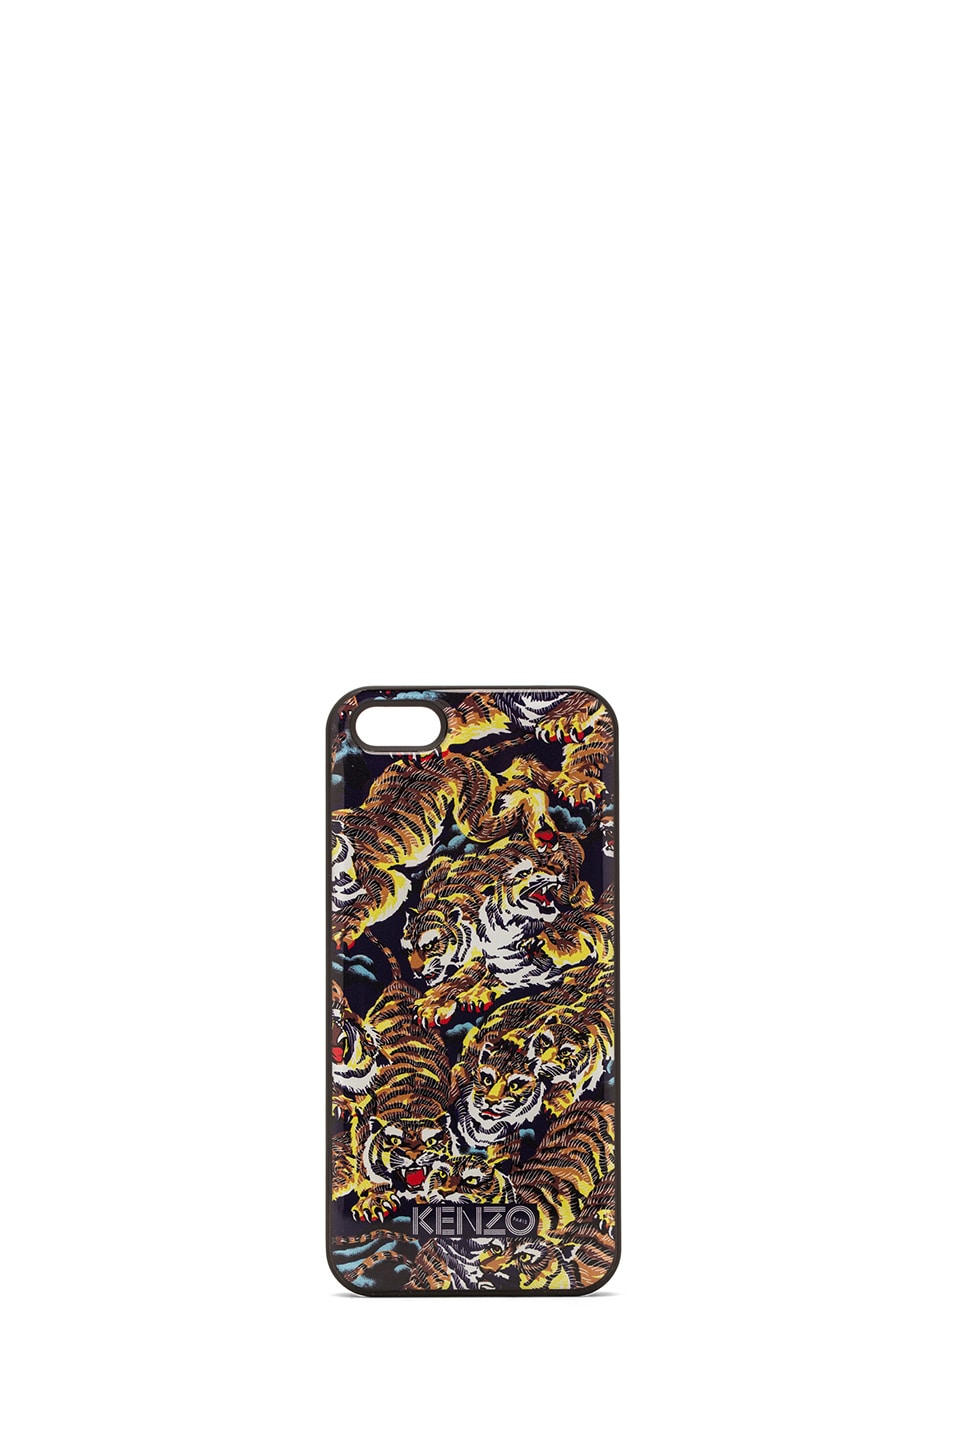 Image 1 of KENZO iPhone 5 Case in Flying Tiger